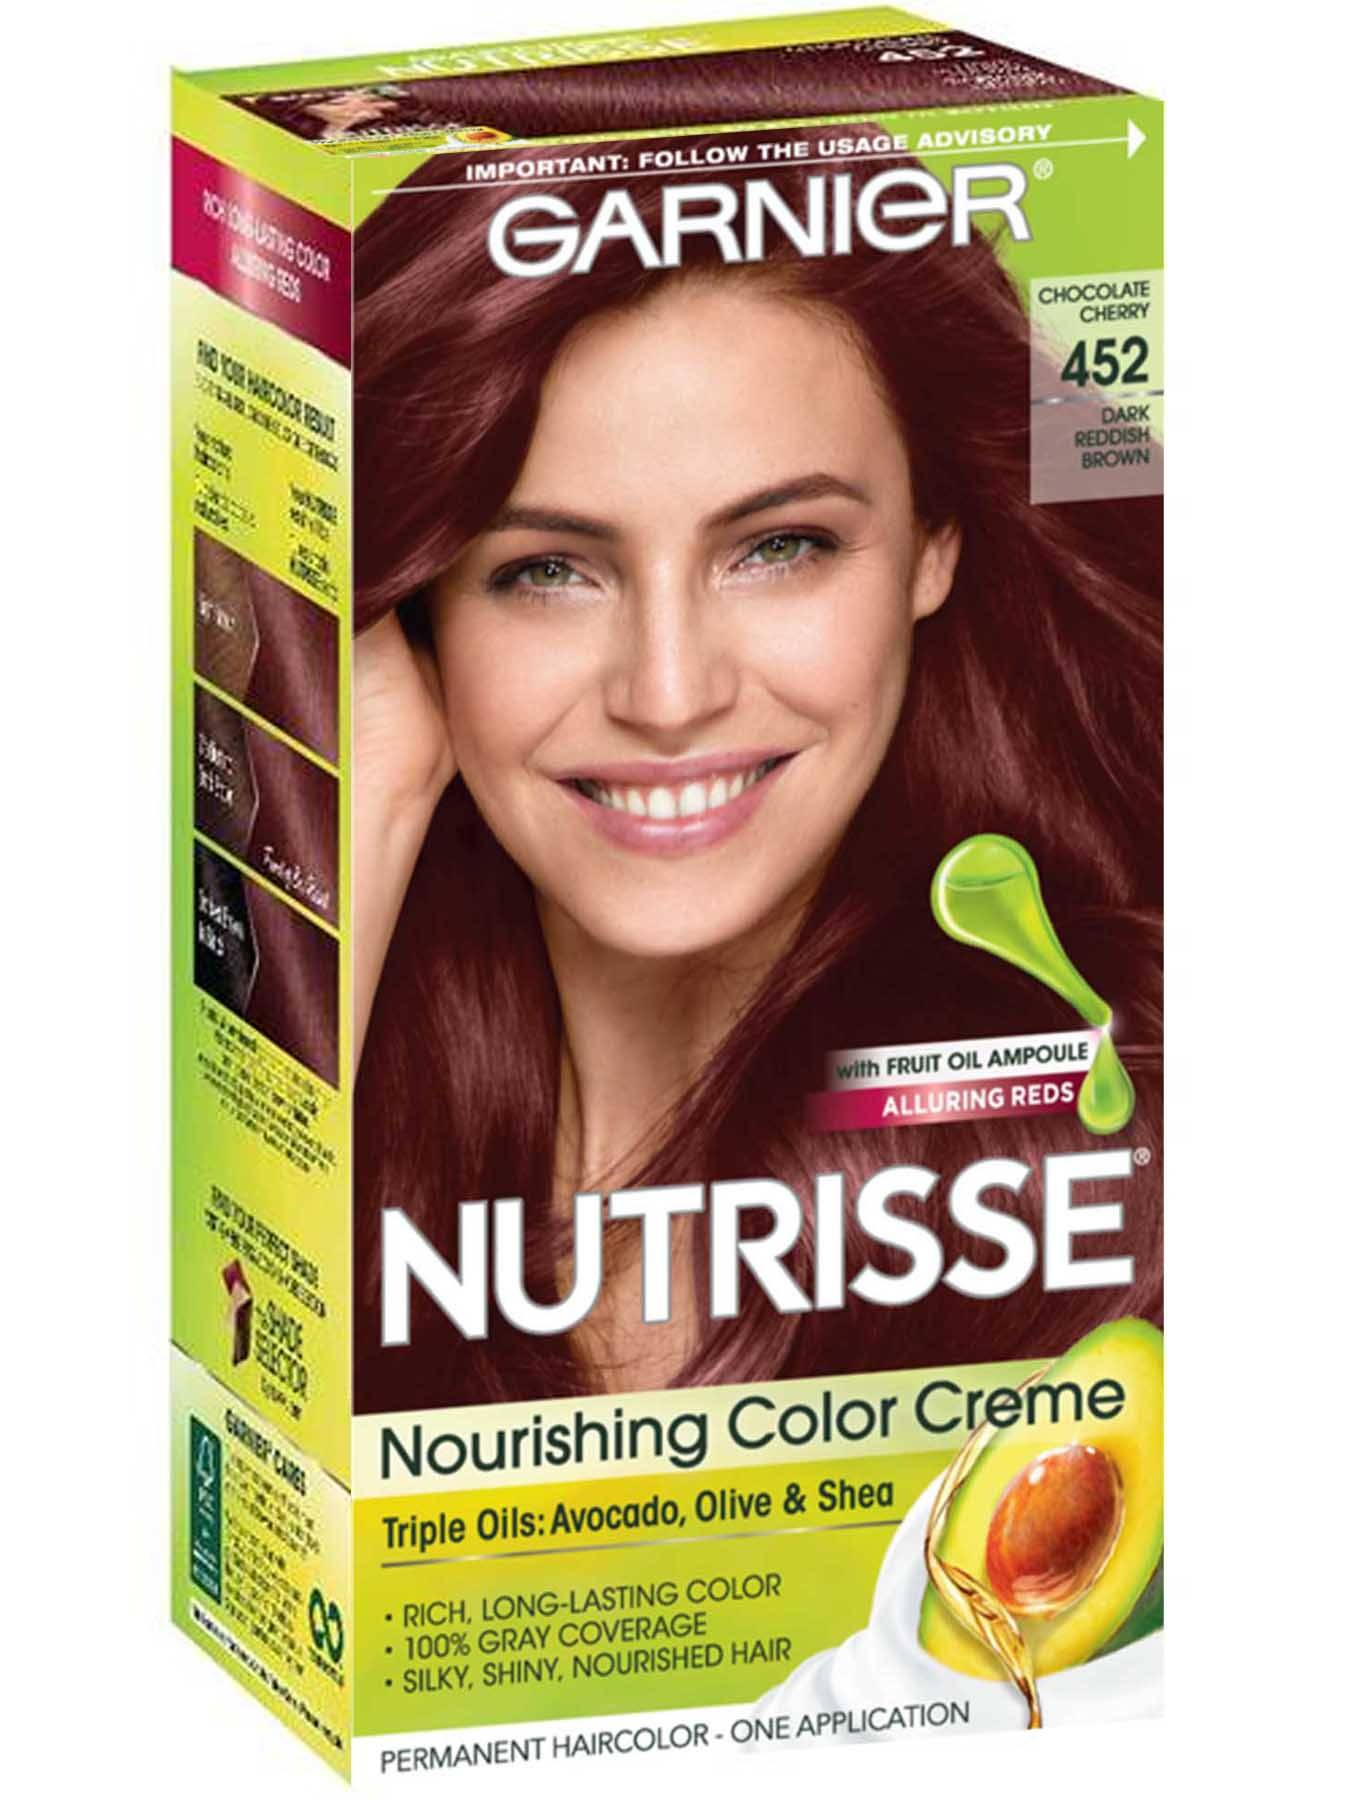 Nutrisse Nourishing Color Creme Dark Reddish Brown 452